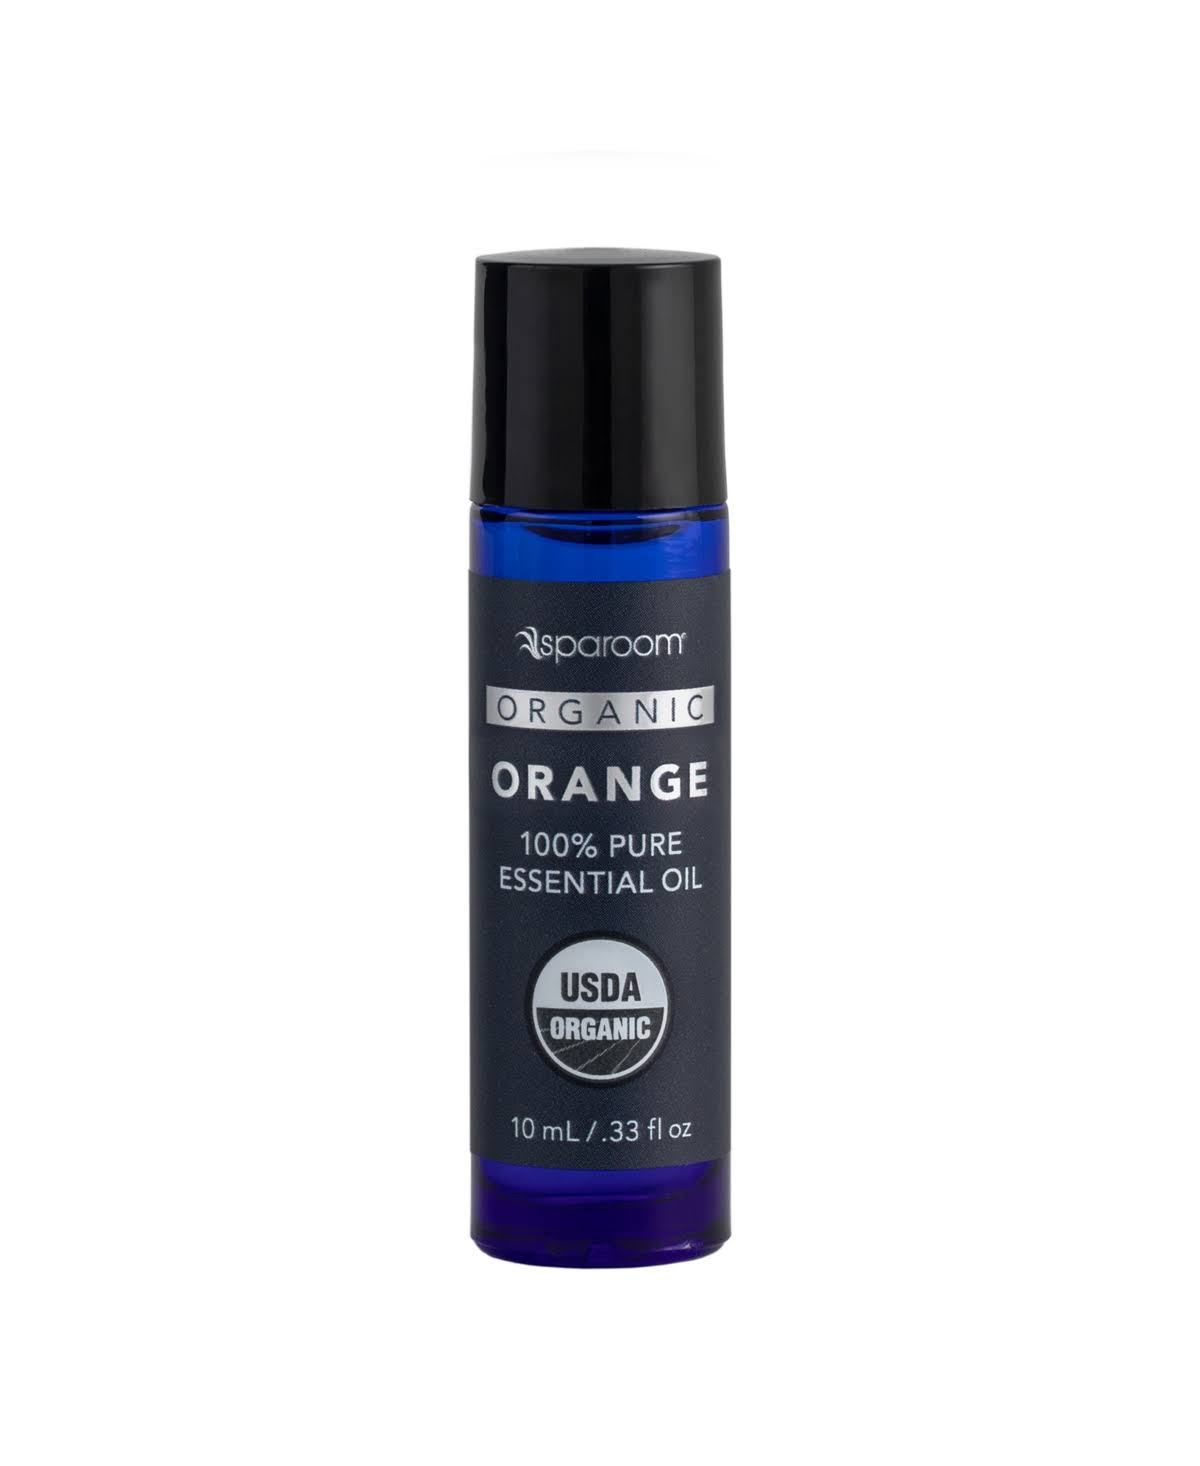 SpaRoom Orange 10 ml Organic Essential Oil Clear